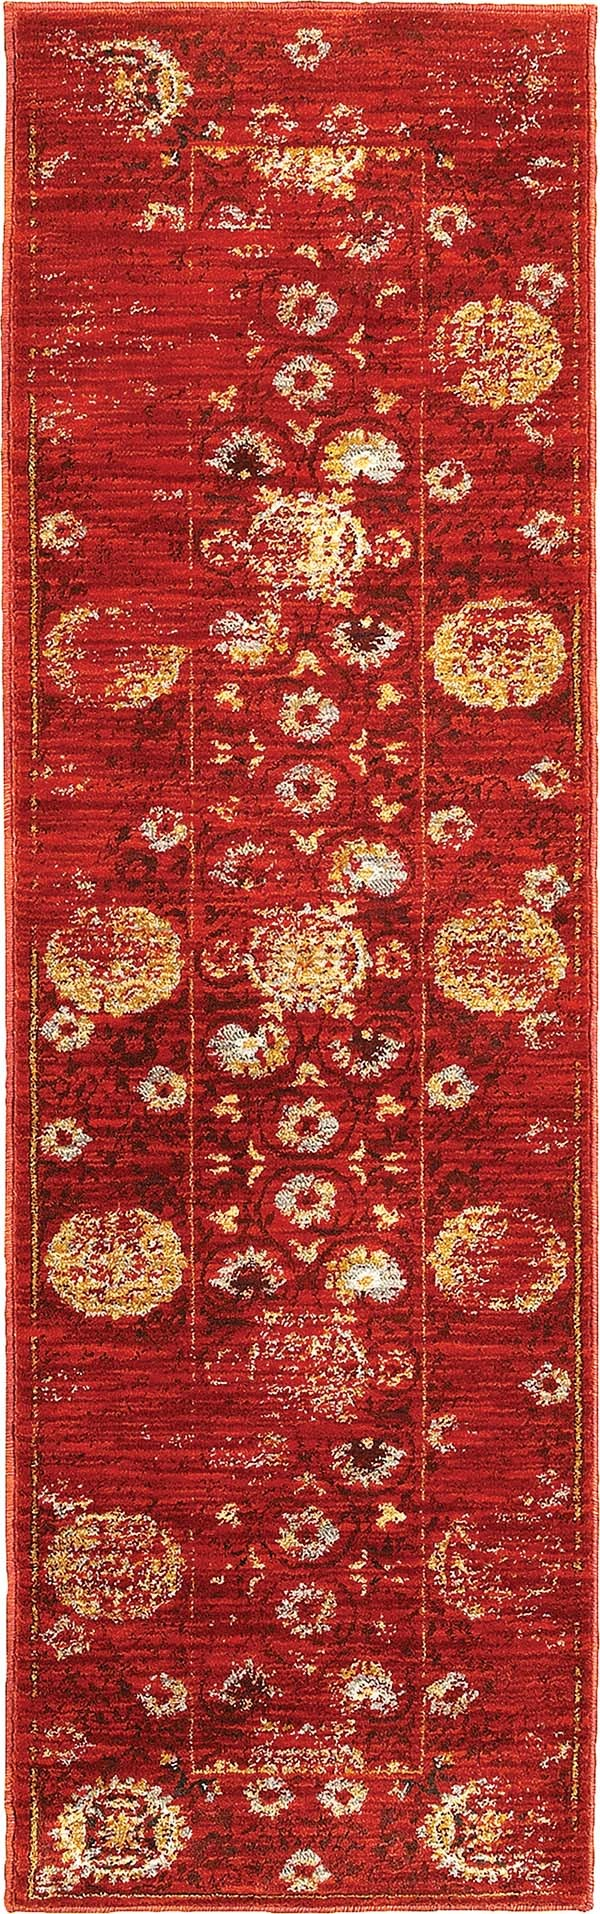 Red, Gold Traditional / Oriental Area Rug